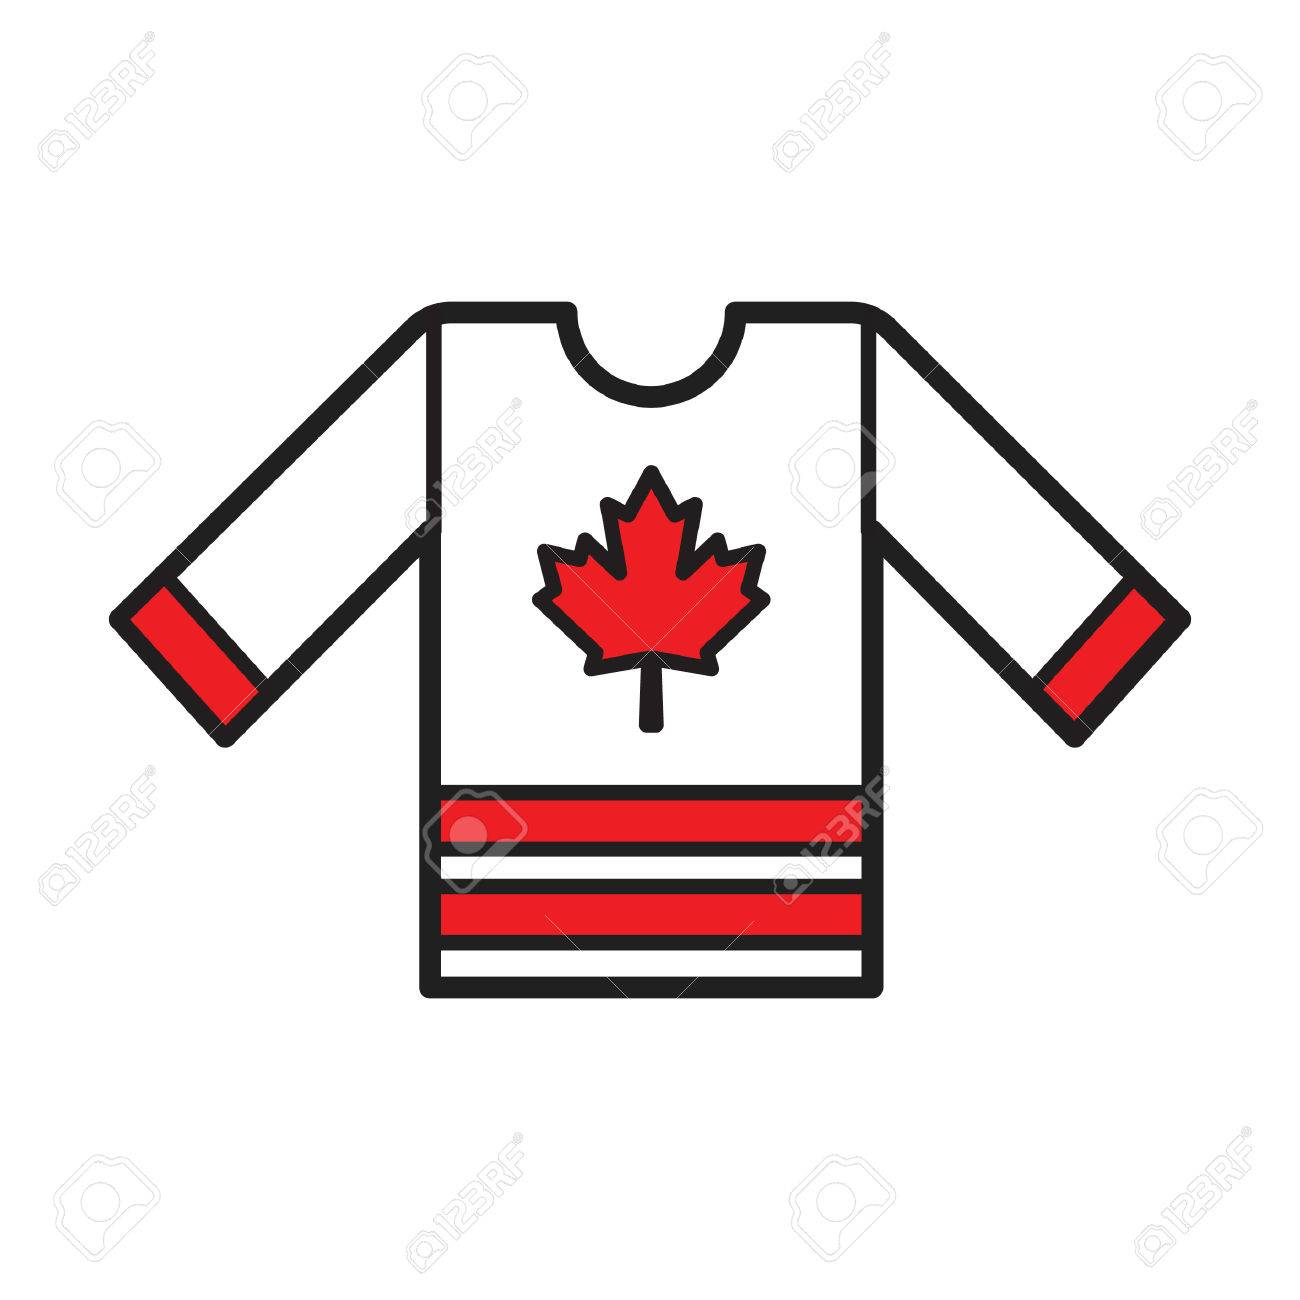 A Hockey Jersey Illustration Royalty Free Cliparts Vectors And